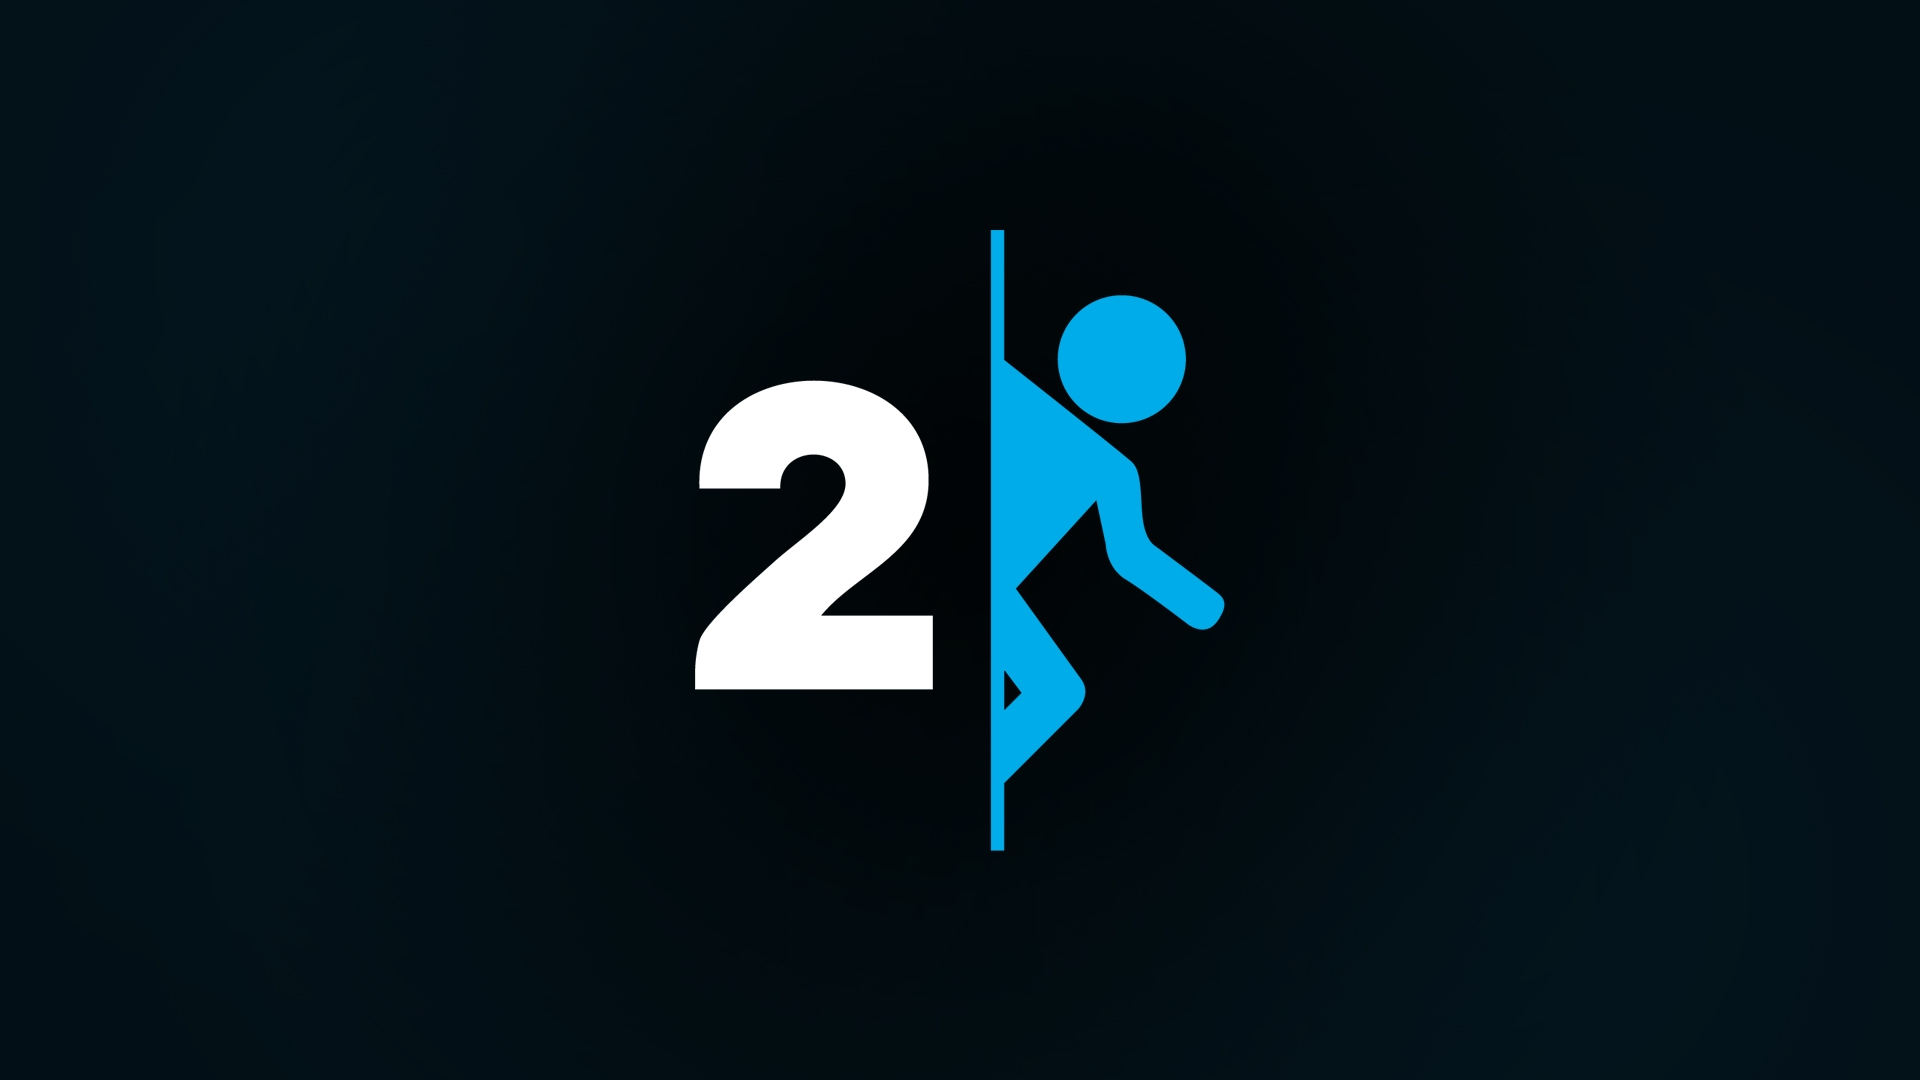 Get The Latest Portal 2 Logo Human News Pictures And Videos Learn All About From Wallpapers4uorg Your Wallpaper Source